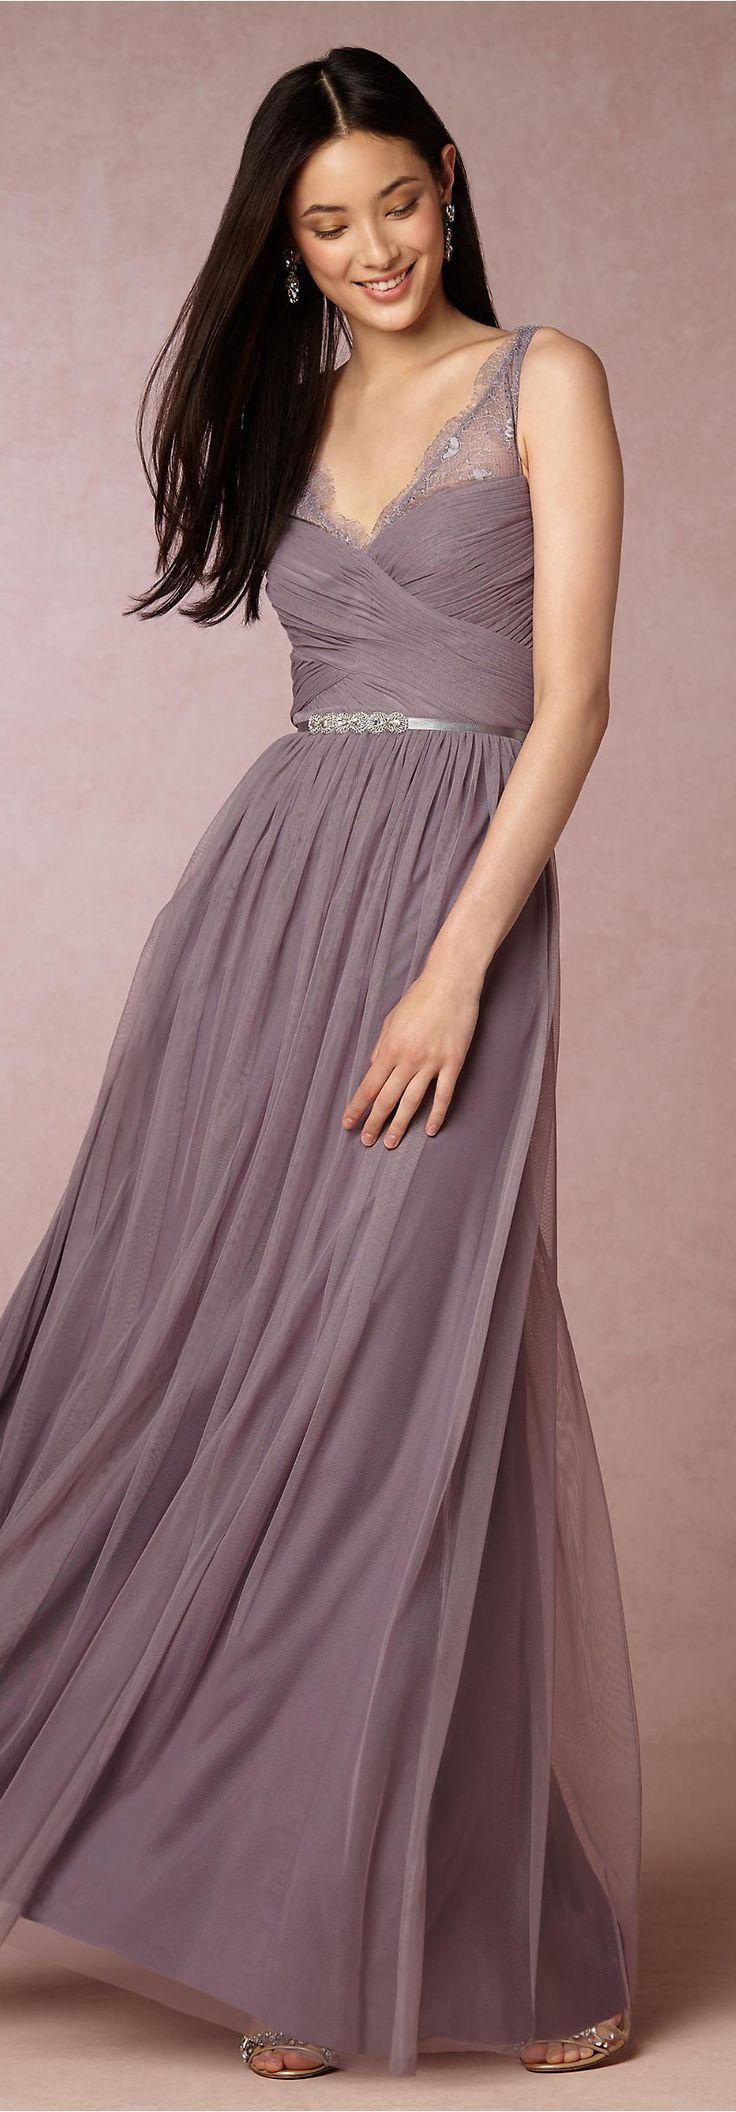 744 best bridesmaid dresses long images on pinterest lilac bridesmaid dress ombrellifo Image collections